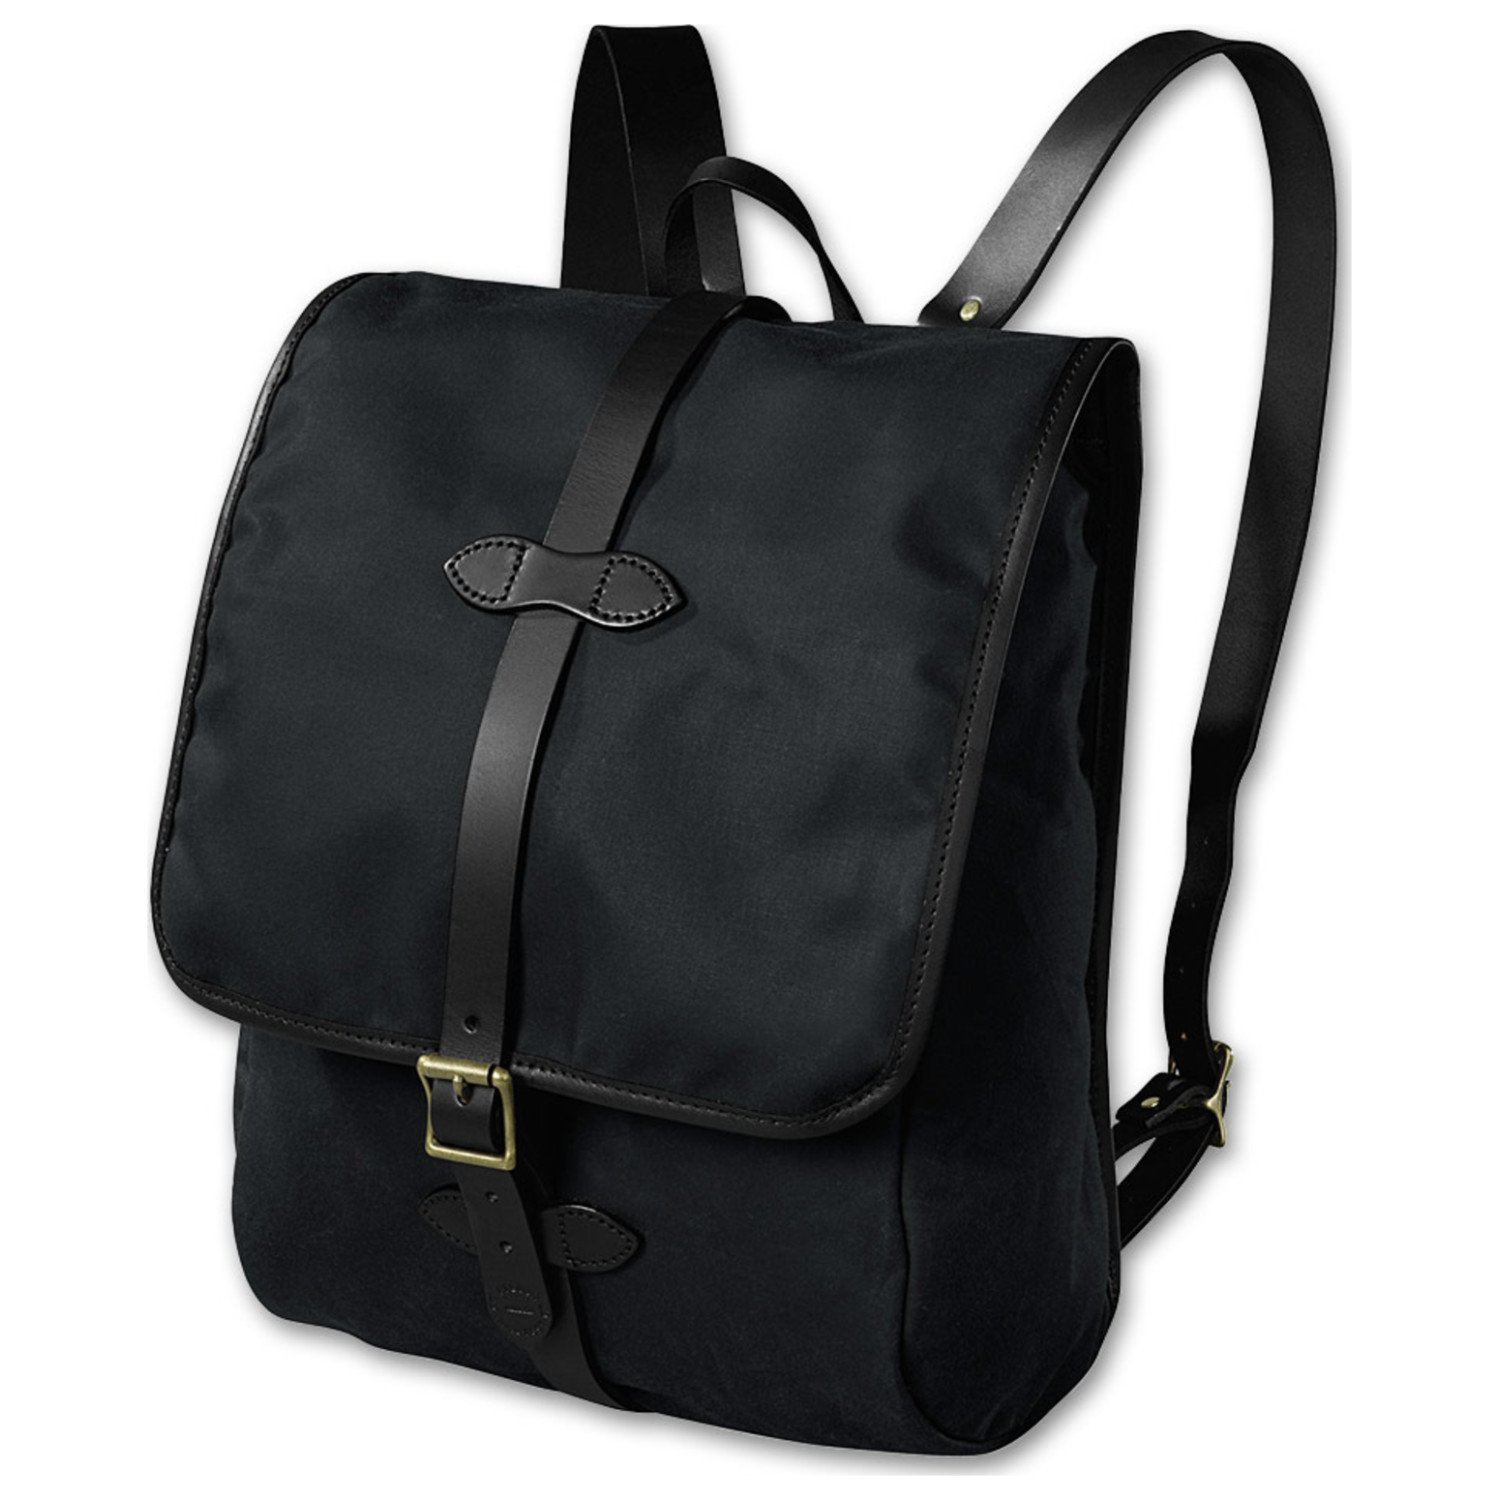 Filson Tin Cloth Backpack - Black by Filson